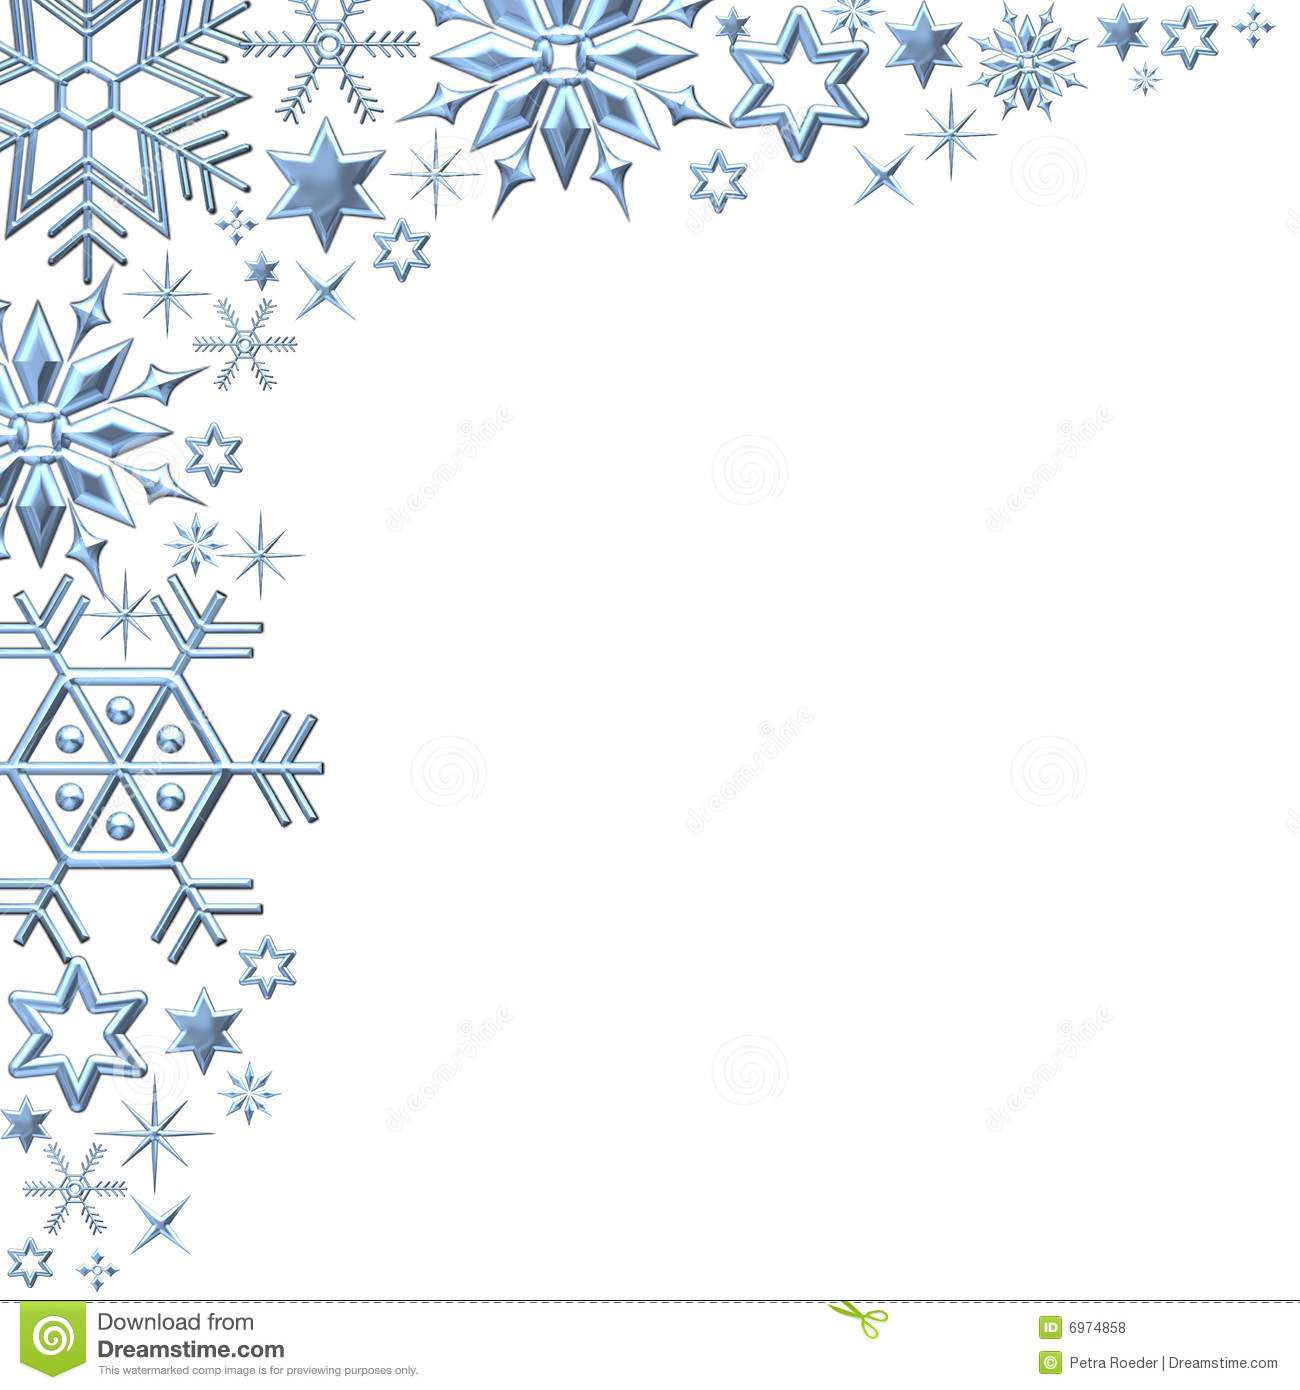 image royalty free download  border clip art. Winter borders clipart.